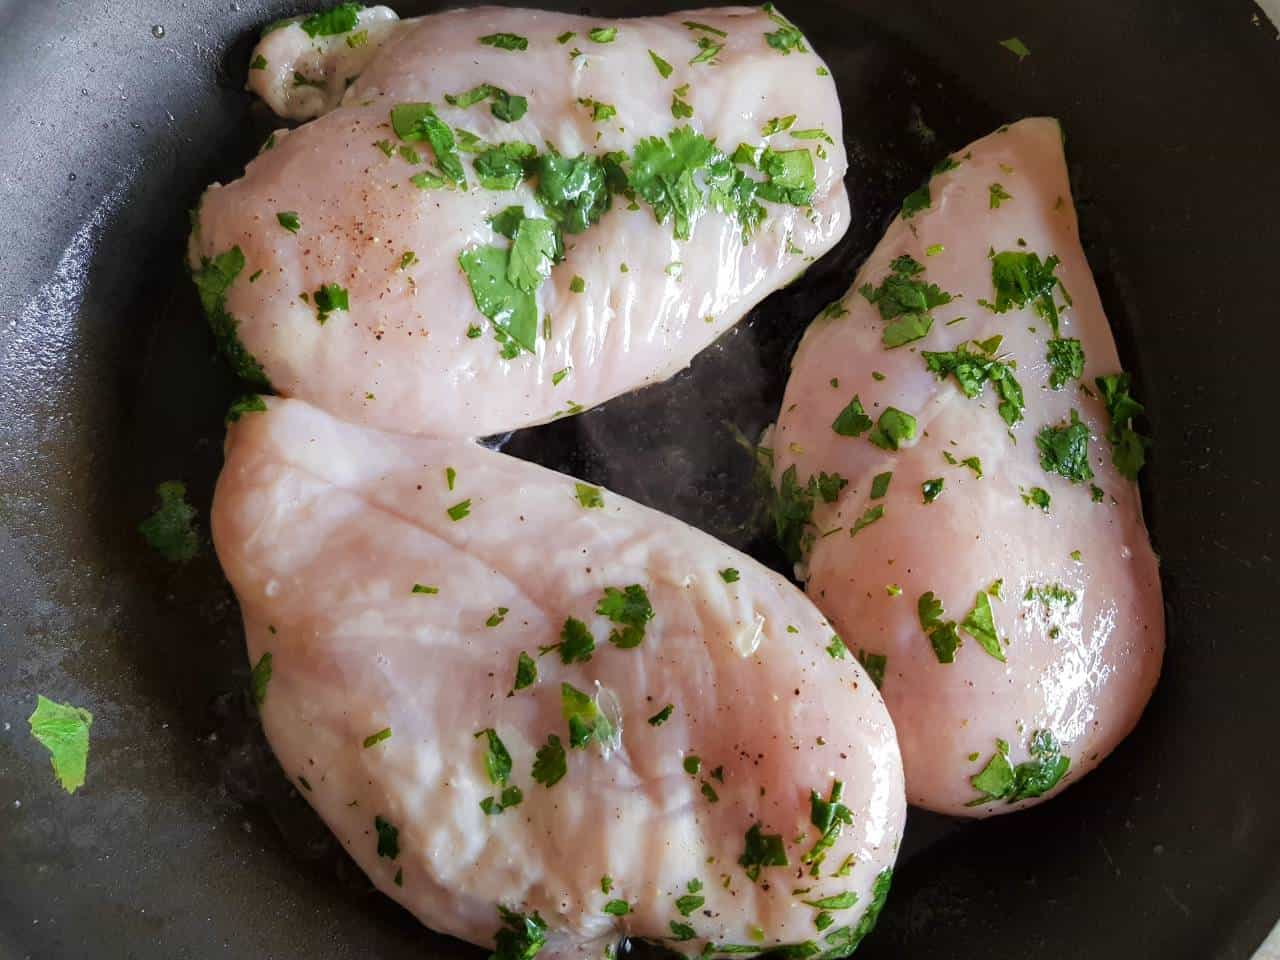 Chicken breast fillets with cilantro in a frying pan.